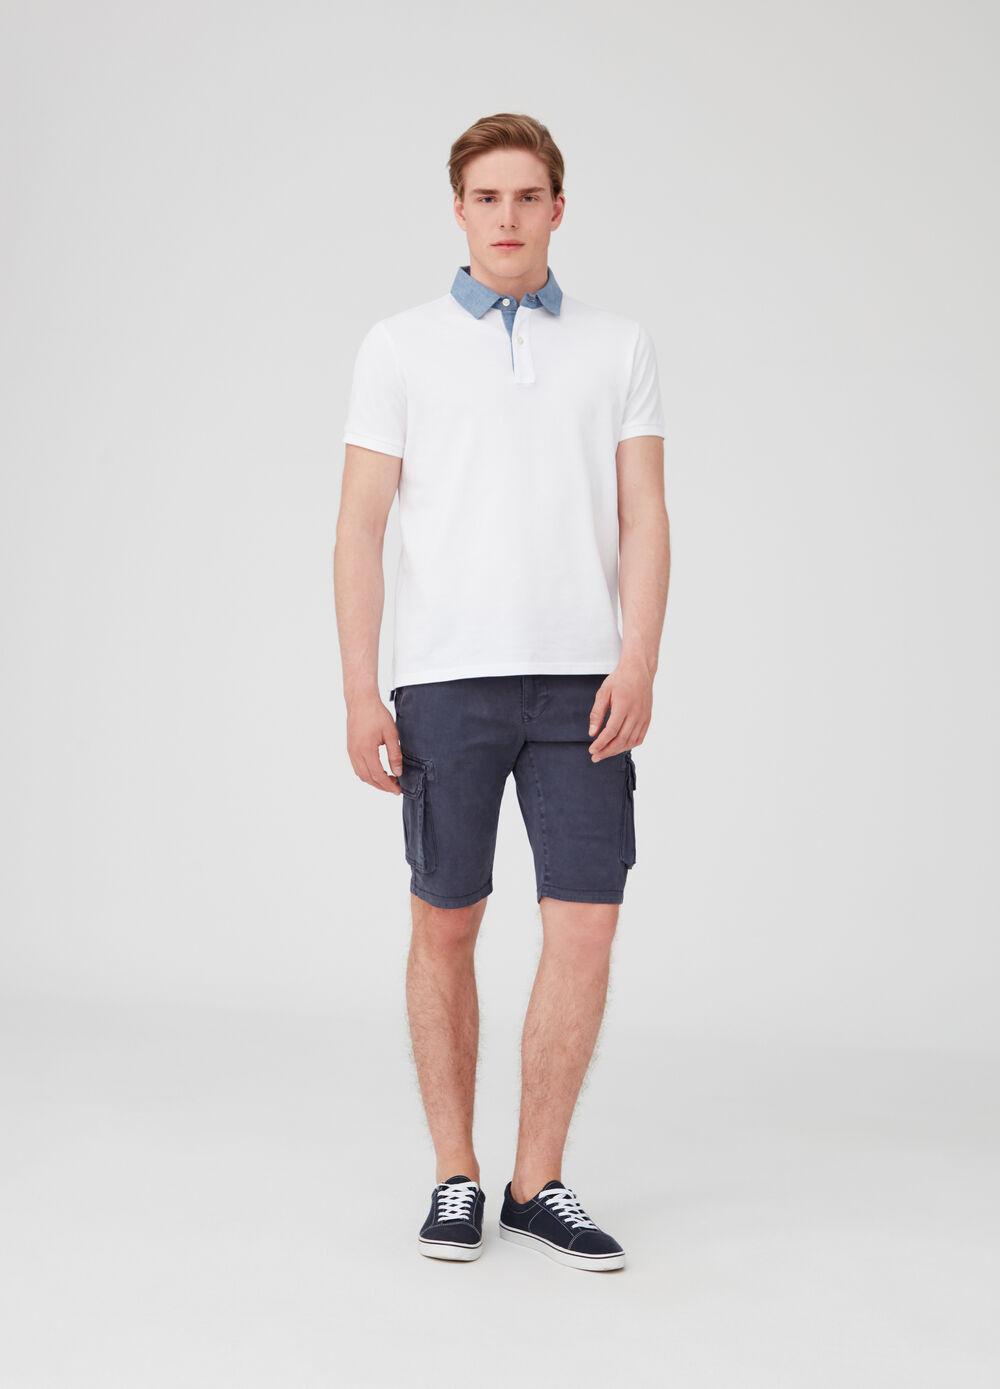 Stretch Bermuda shorts with large pockets and pockets